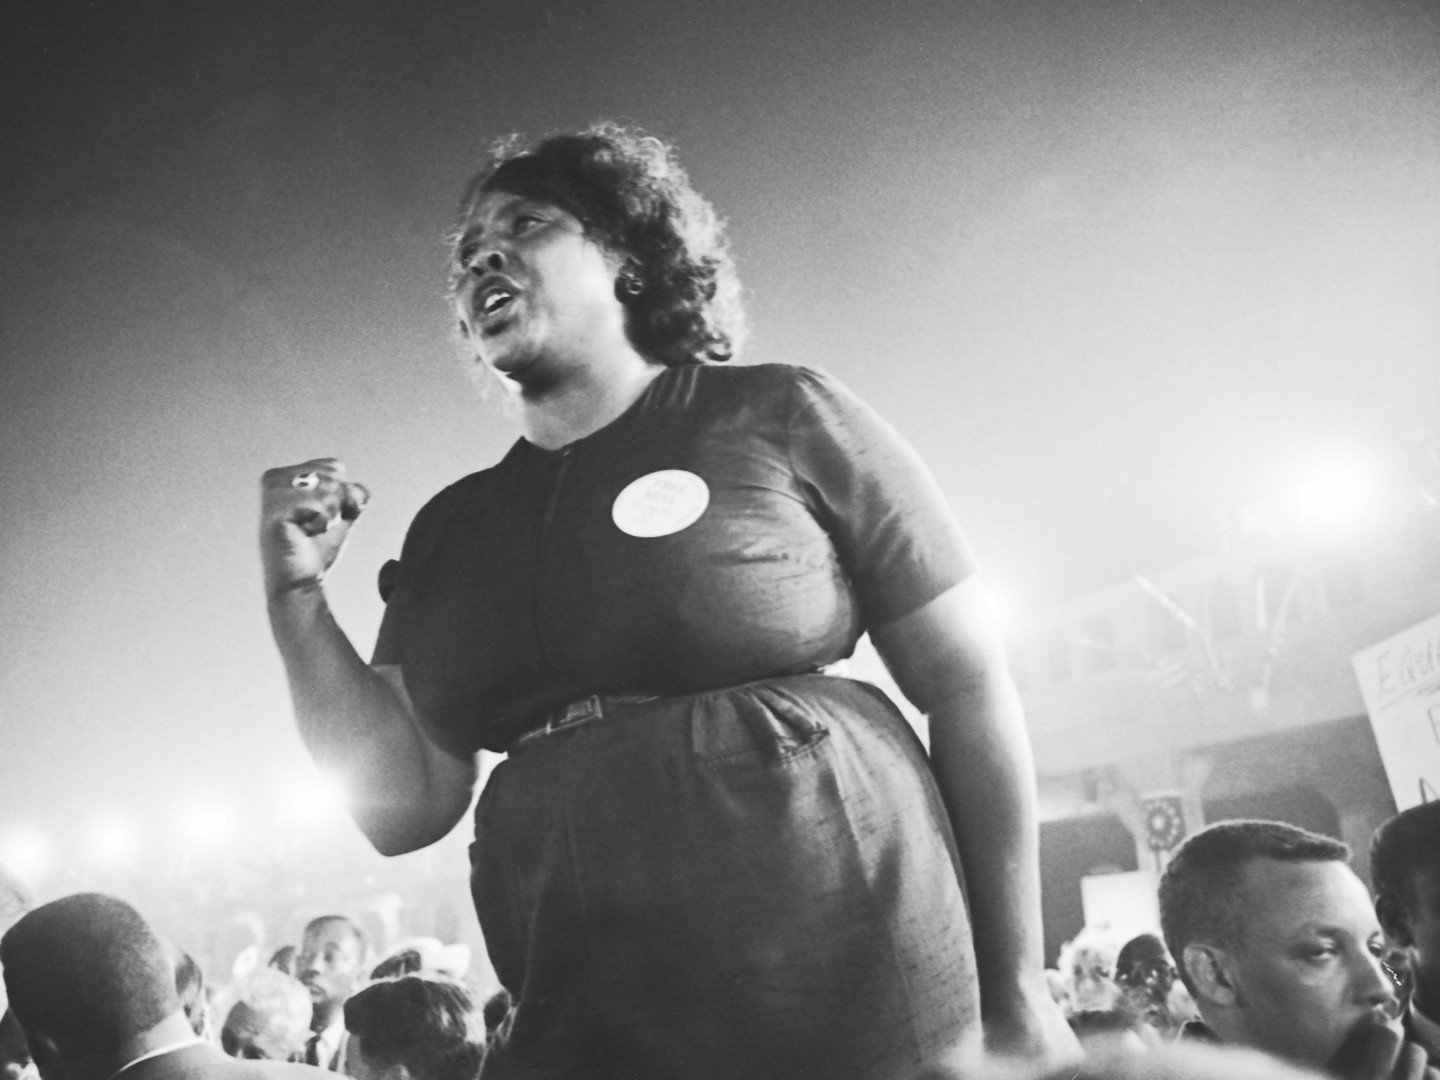 a photograph of a Black woman with short, black, hair leading a rally